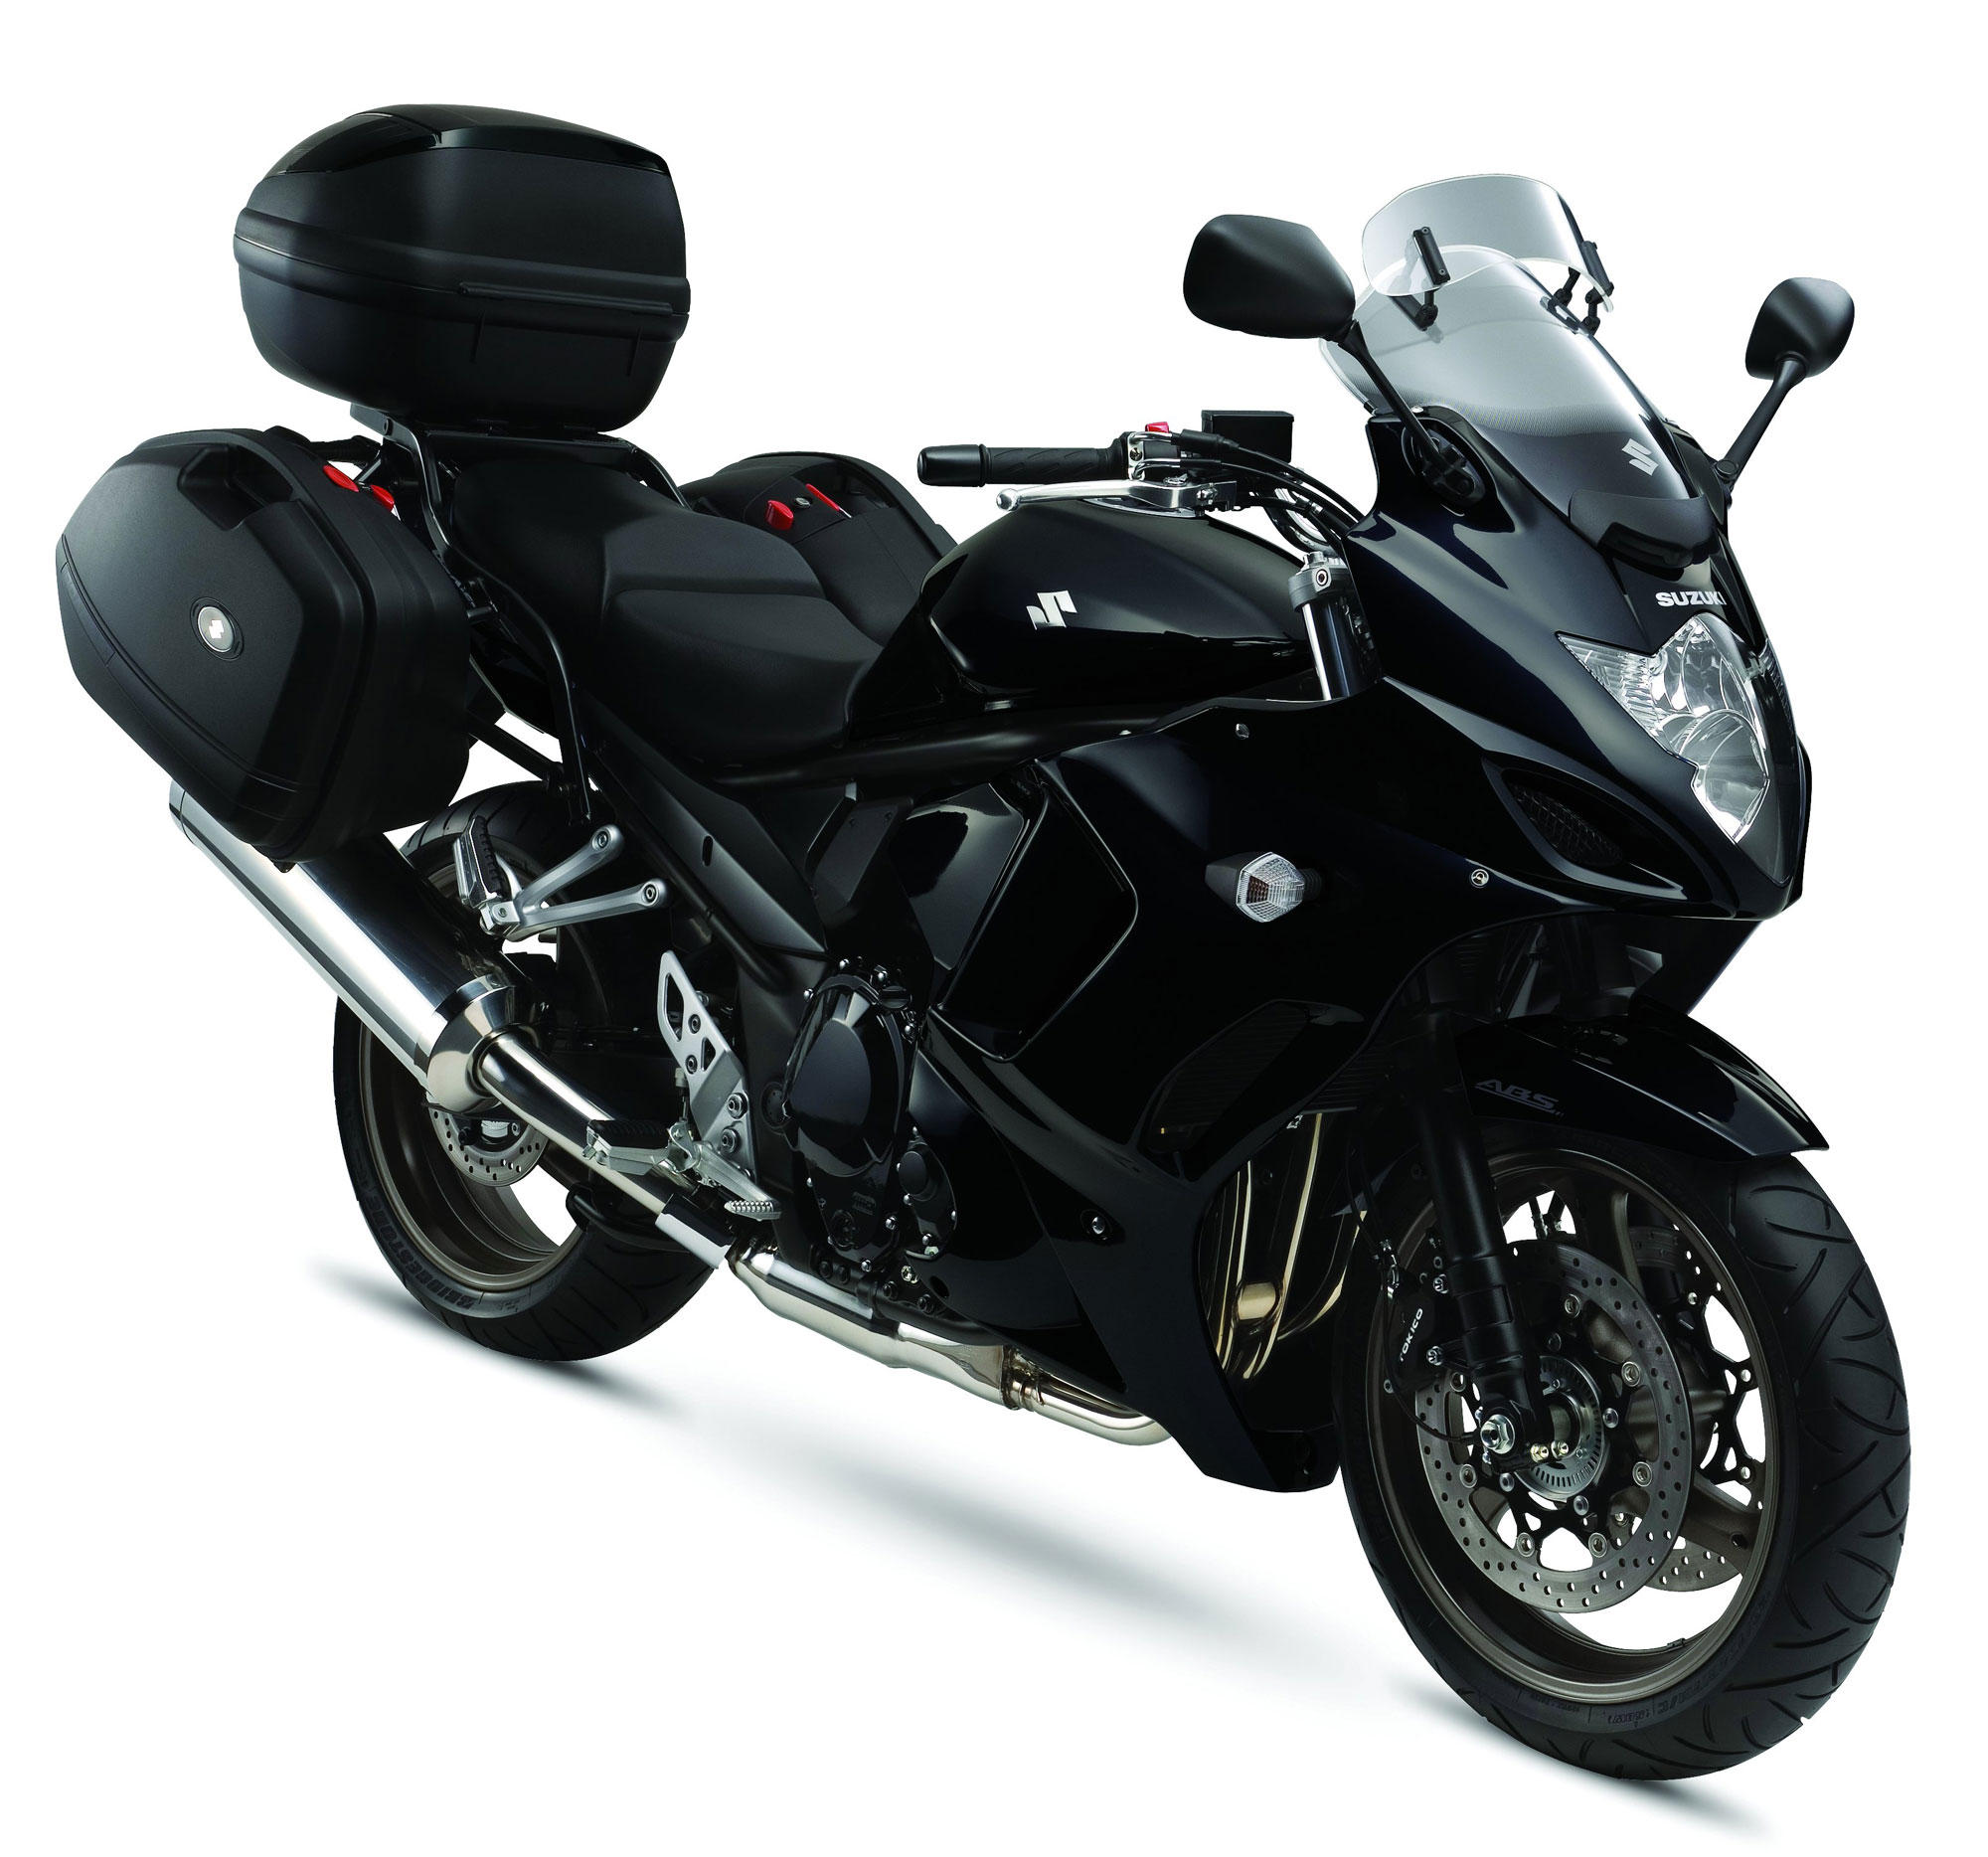 suzuki gsx1250fa st sea touring specs 2011 2012. Black Bedroom Furniture Sets. Home Design Ideas